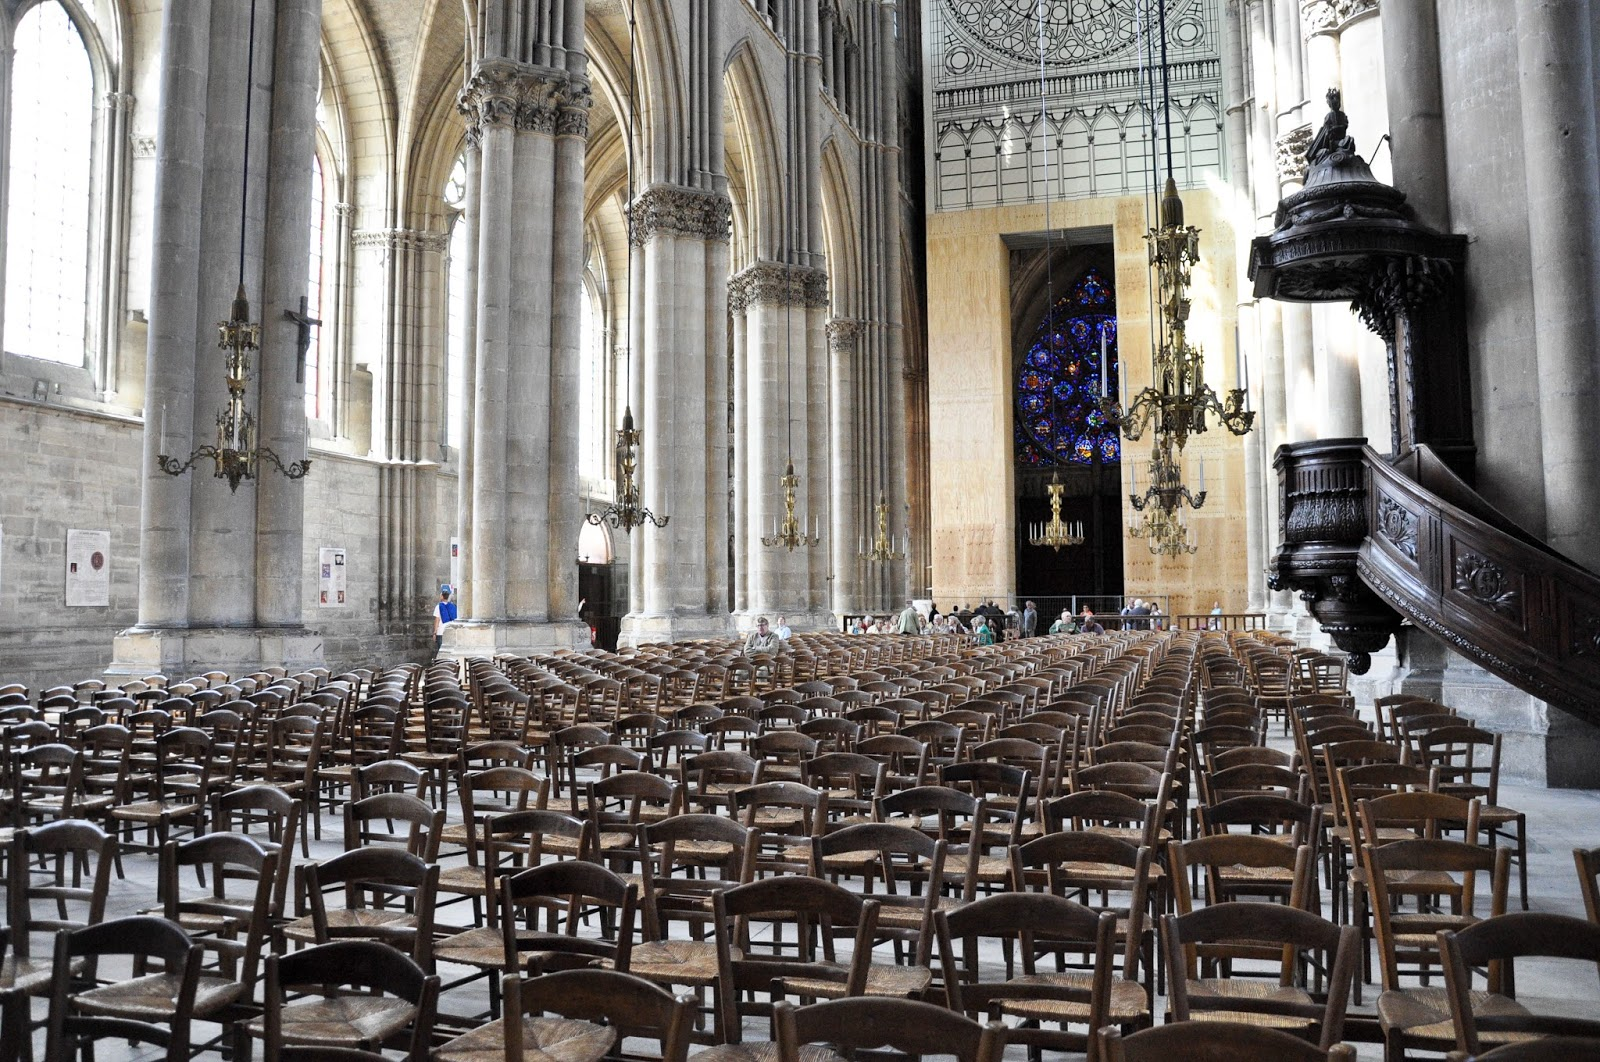 Chairs, Reims Cathedral, Reims, France